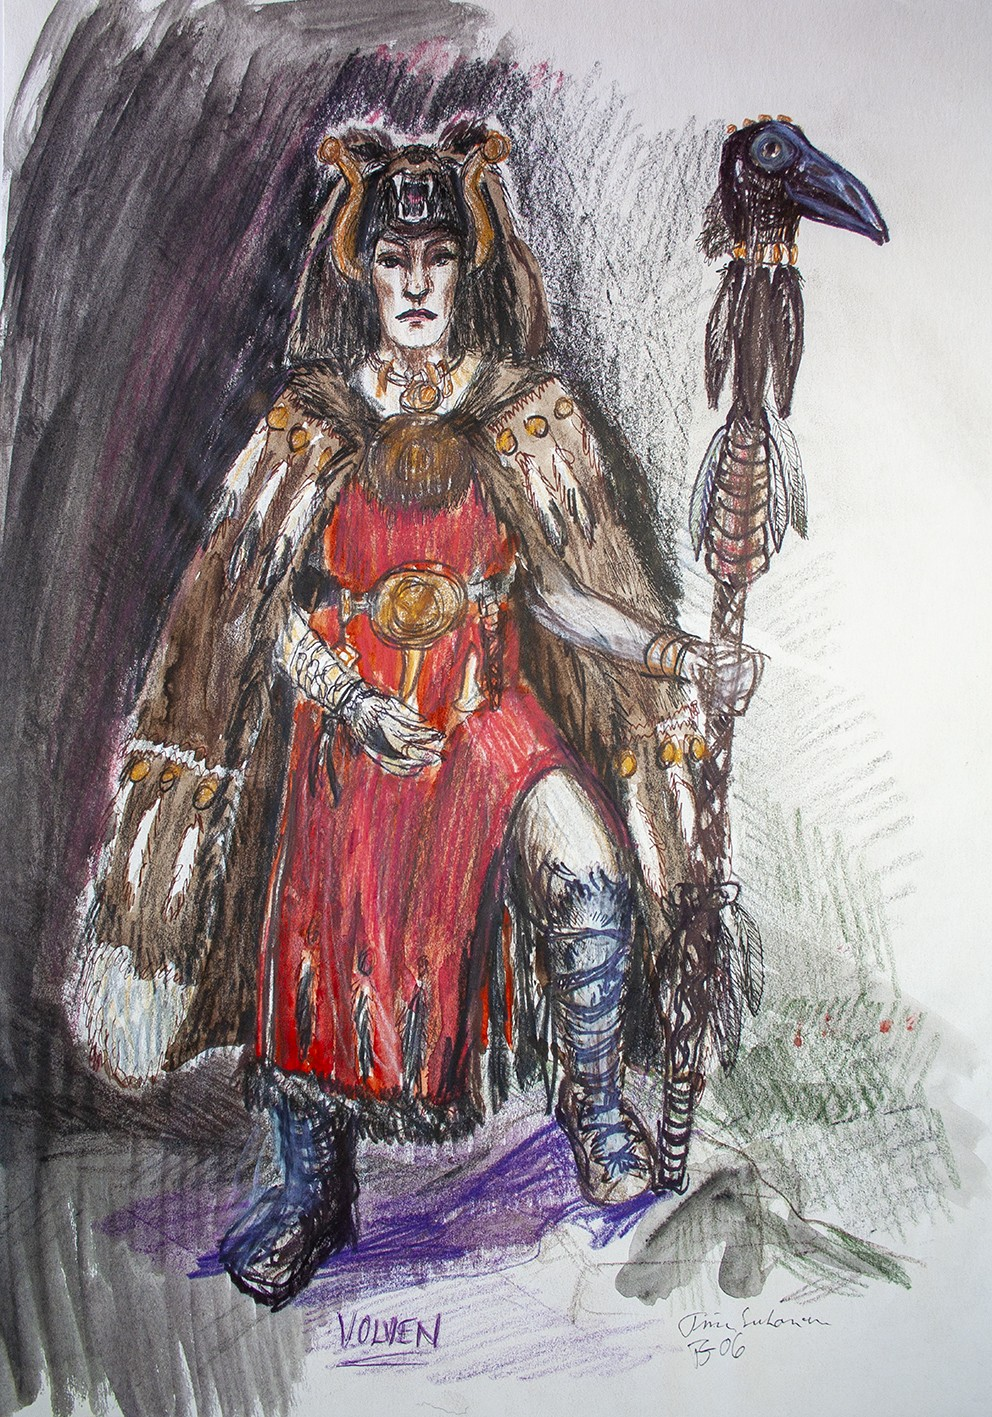 A sketch for a Seeress costume including a red dress, fur cape and a crow head staff